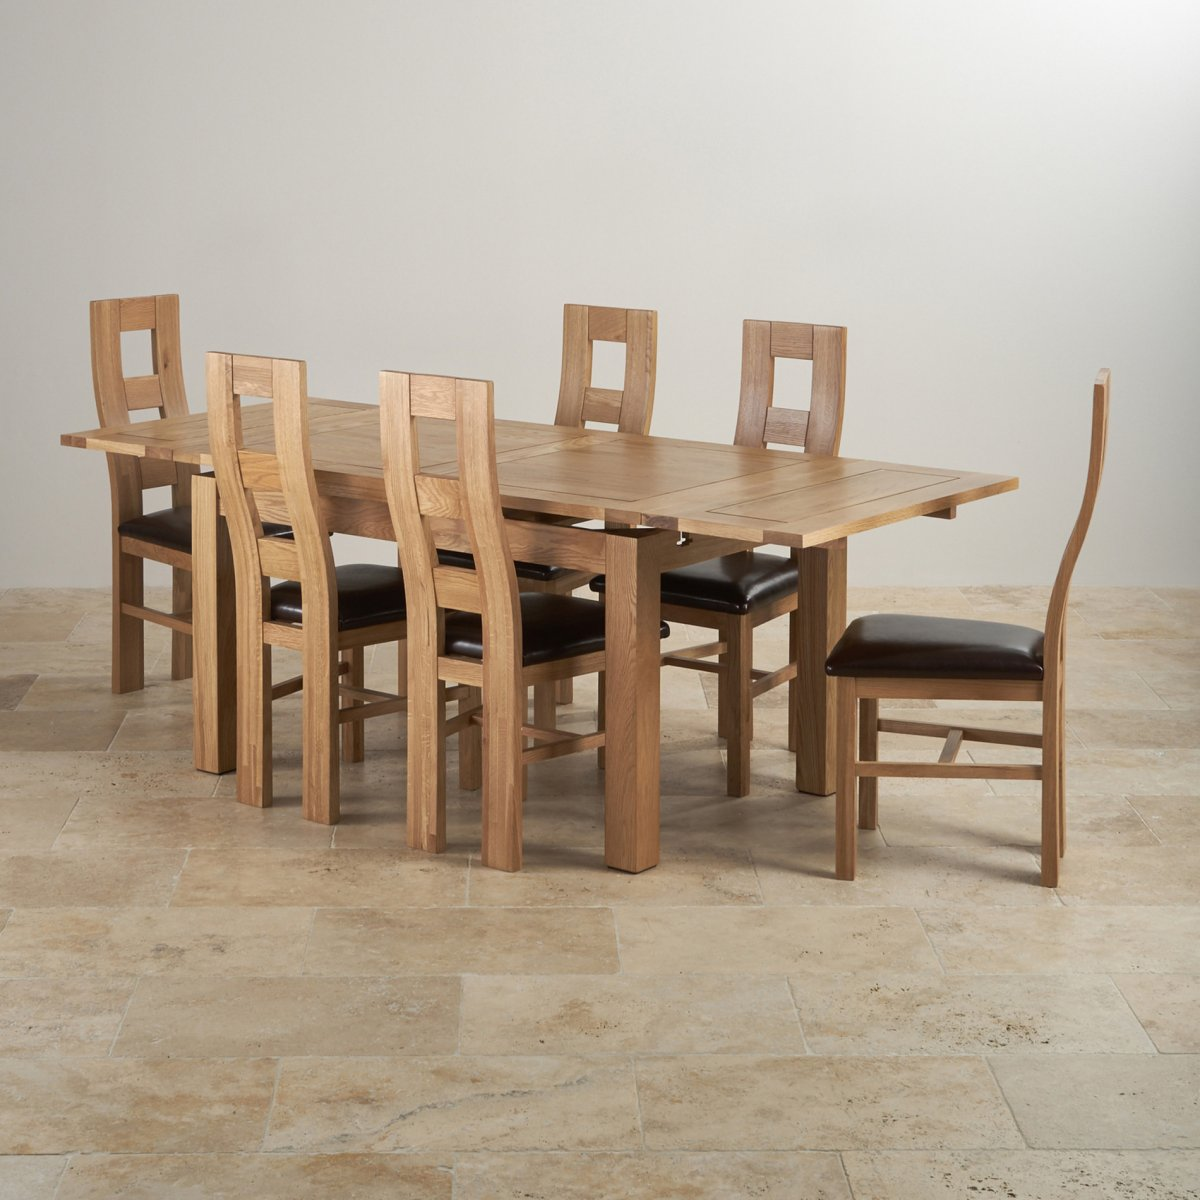 dorset dining set extending table in oak 6 leather chairs. Black Bedroom Furniture Sets. Home Design Ideas